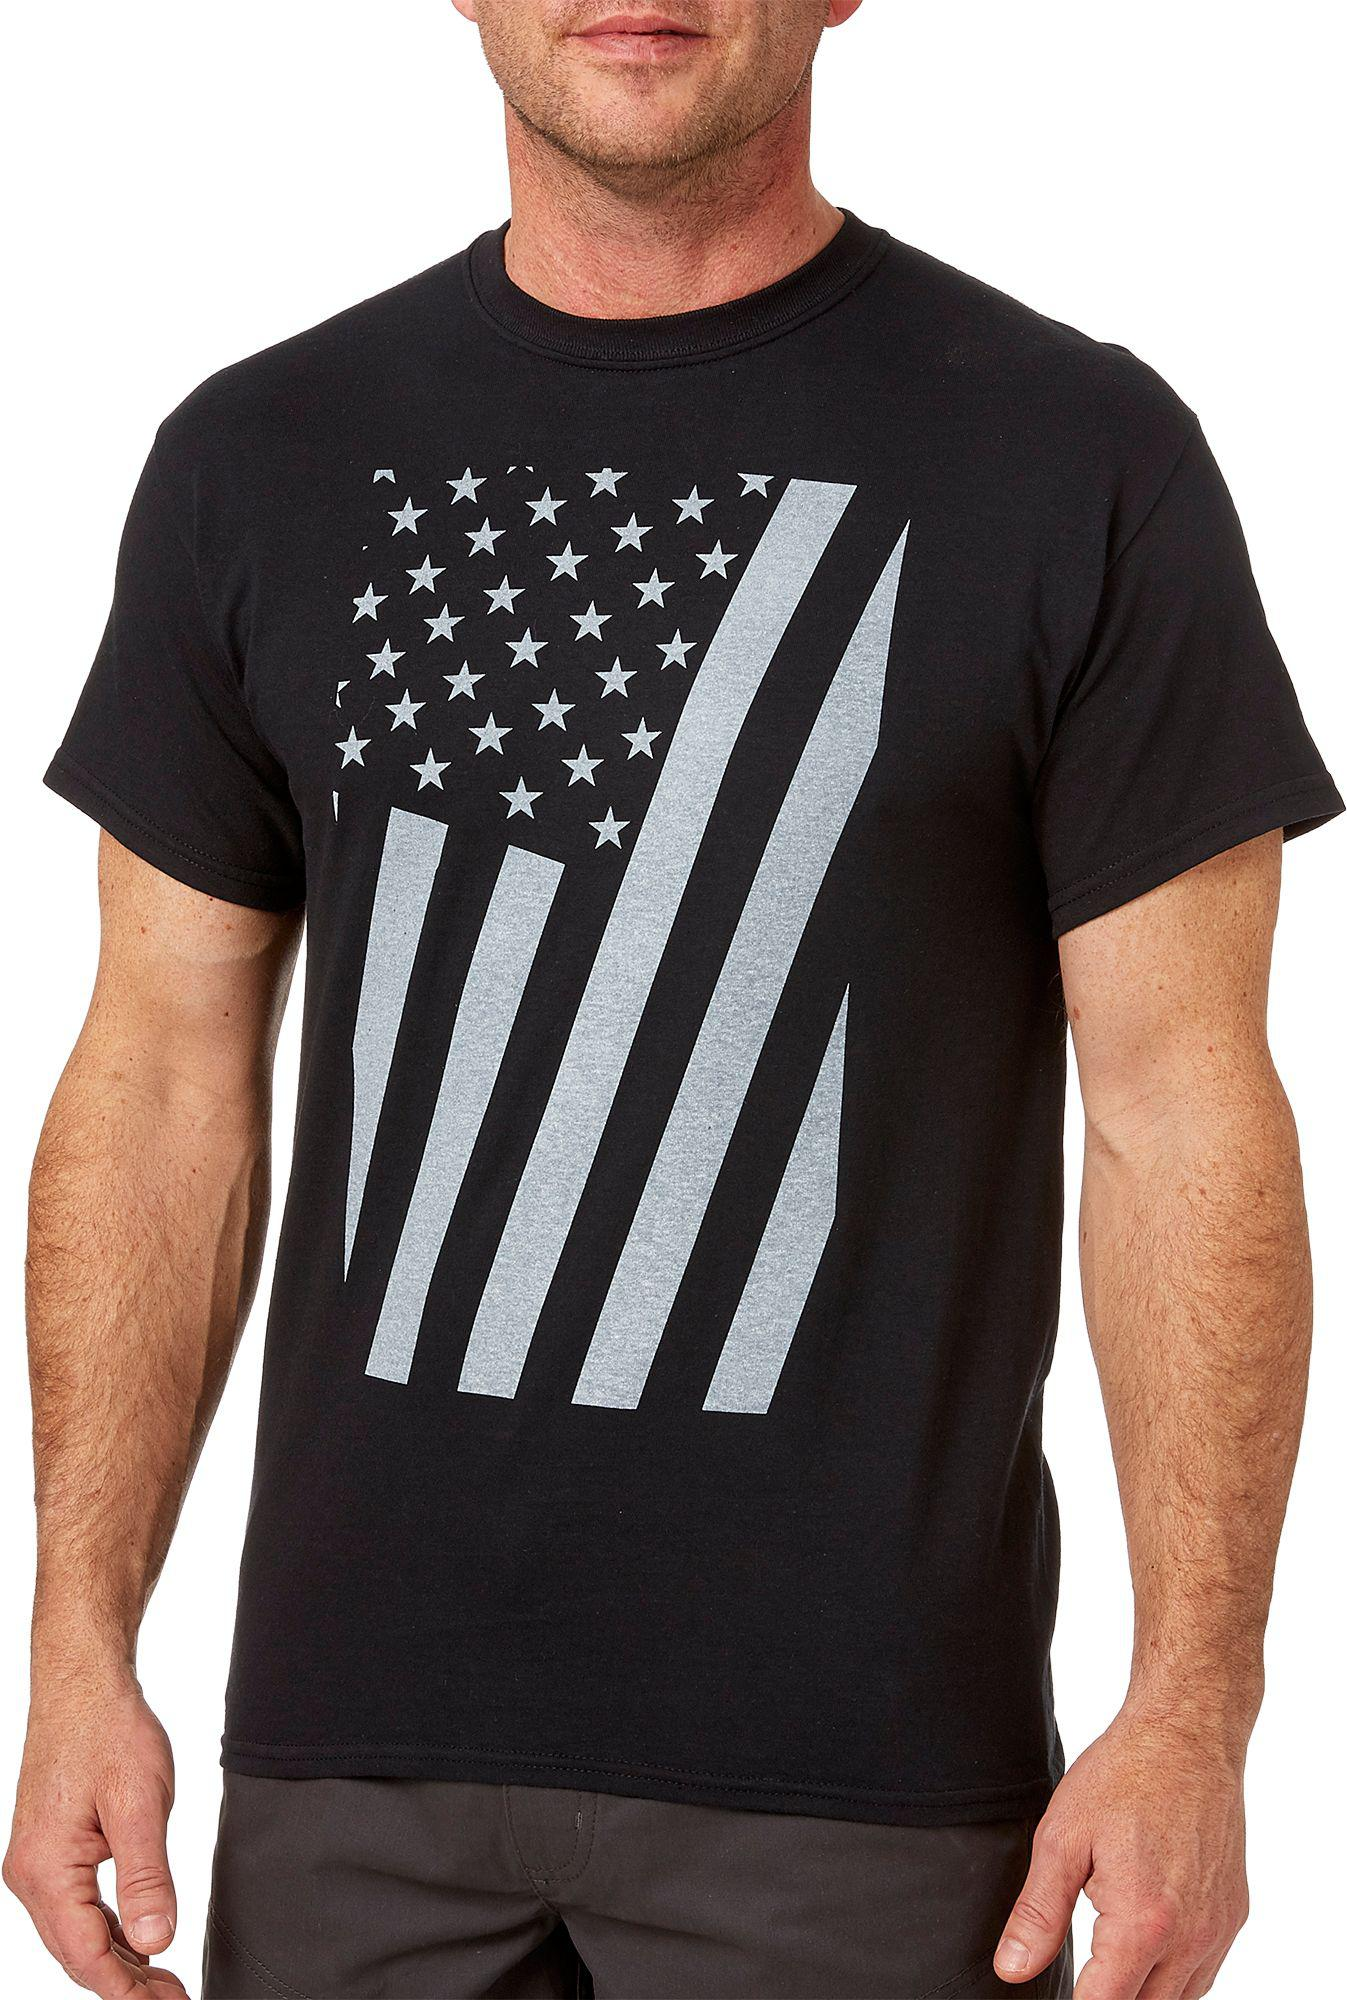 5b5a8110cc DICK'S Sporting Goods Short Sleeve Americana T-shirt in Black for ...